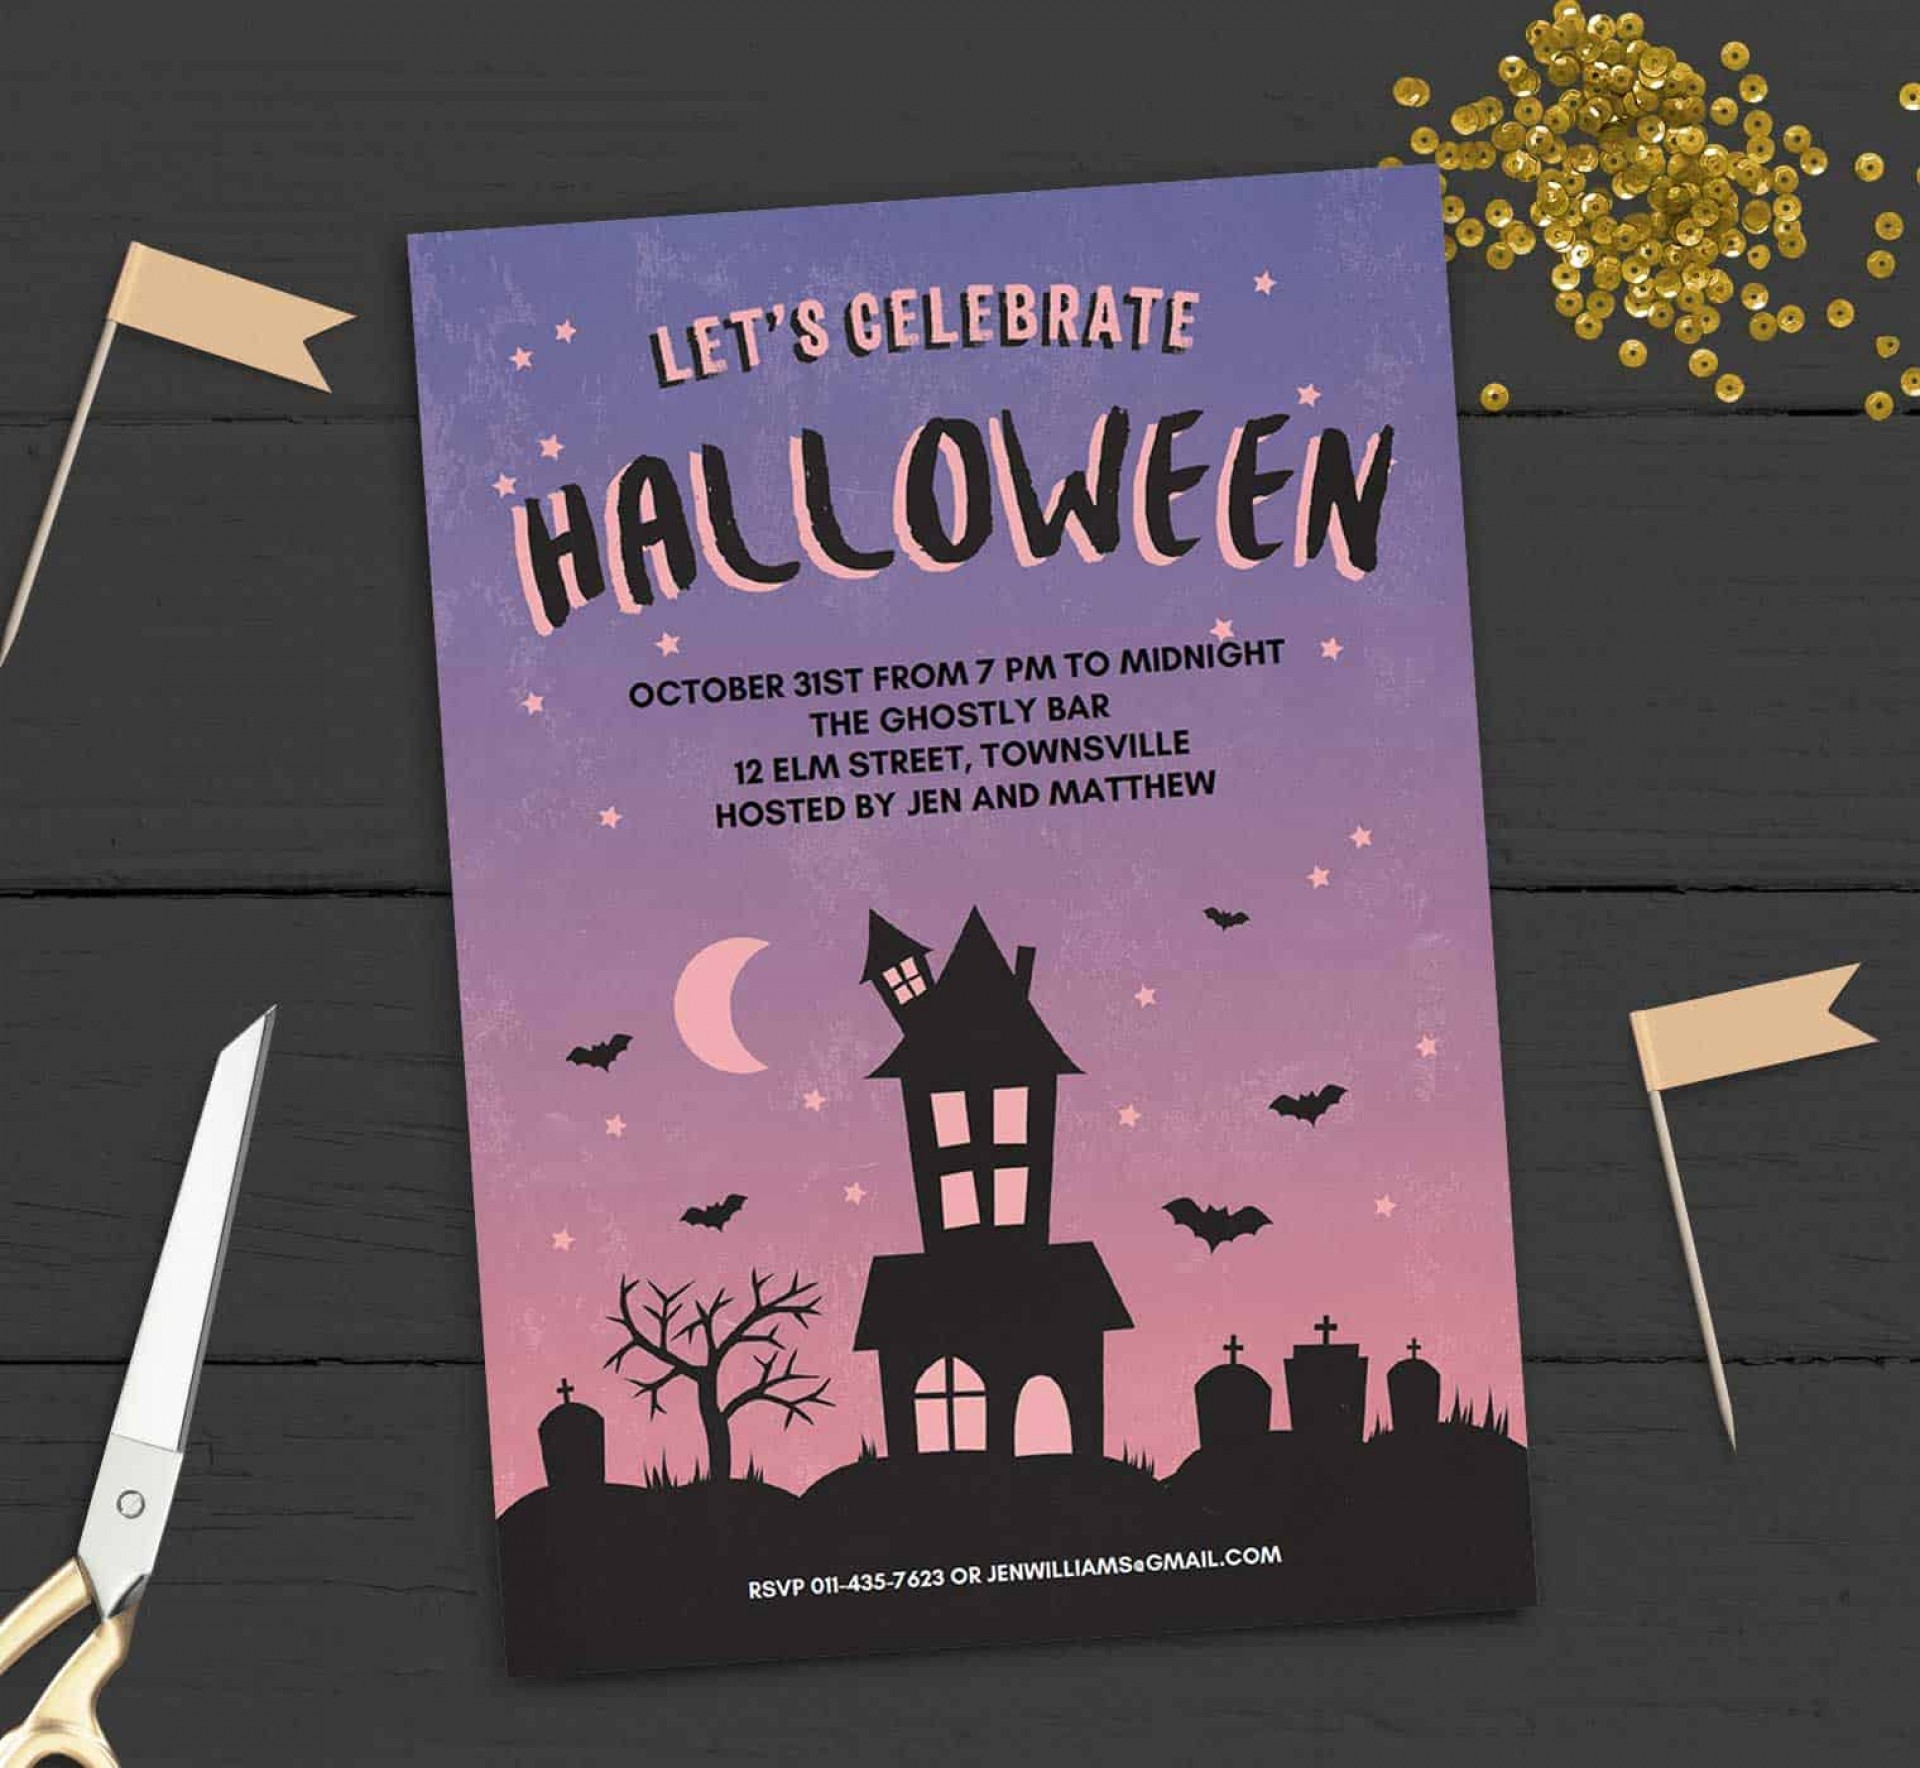 005 Stupendou Free Halloween Party Invitation Template Photo  Printable Birthday For Word Download1920